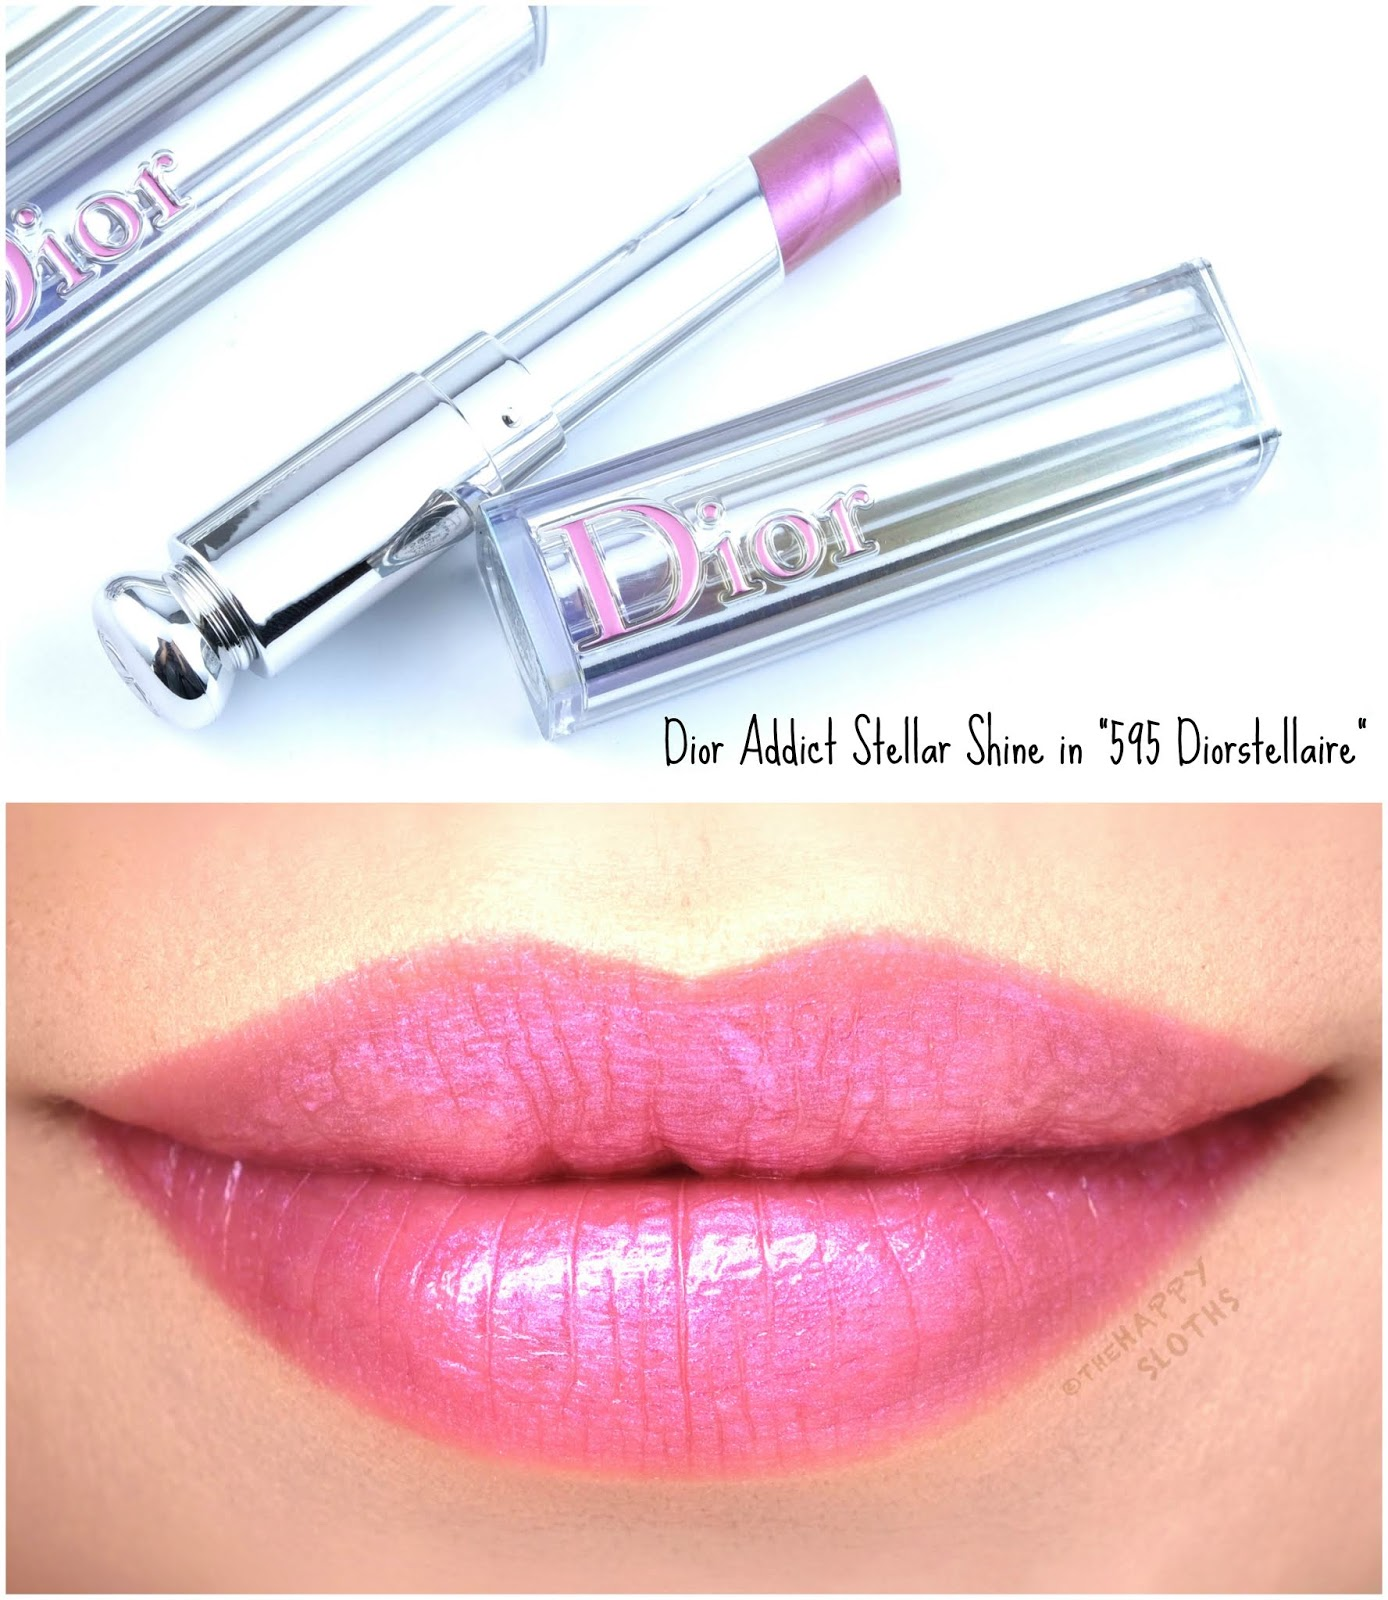 "Dior | Dior Addict Stellar Shine in 595 Diorstellaire"": Review and Swatches"